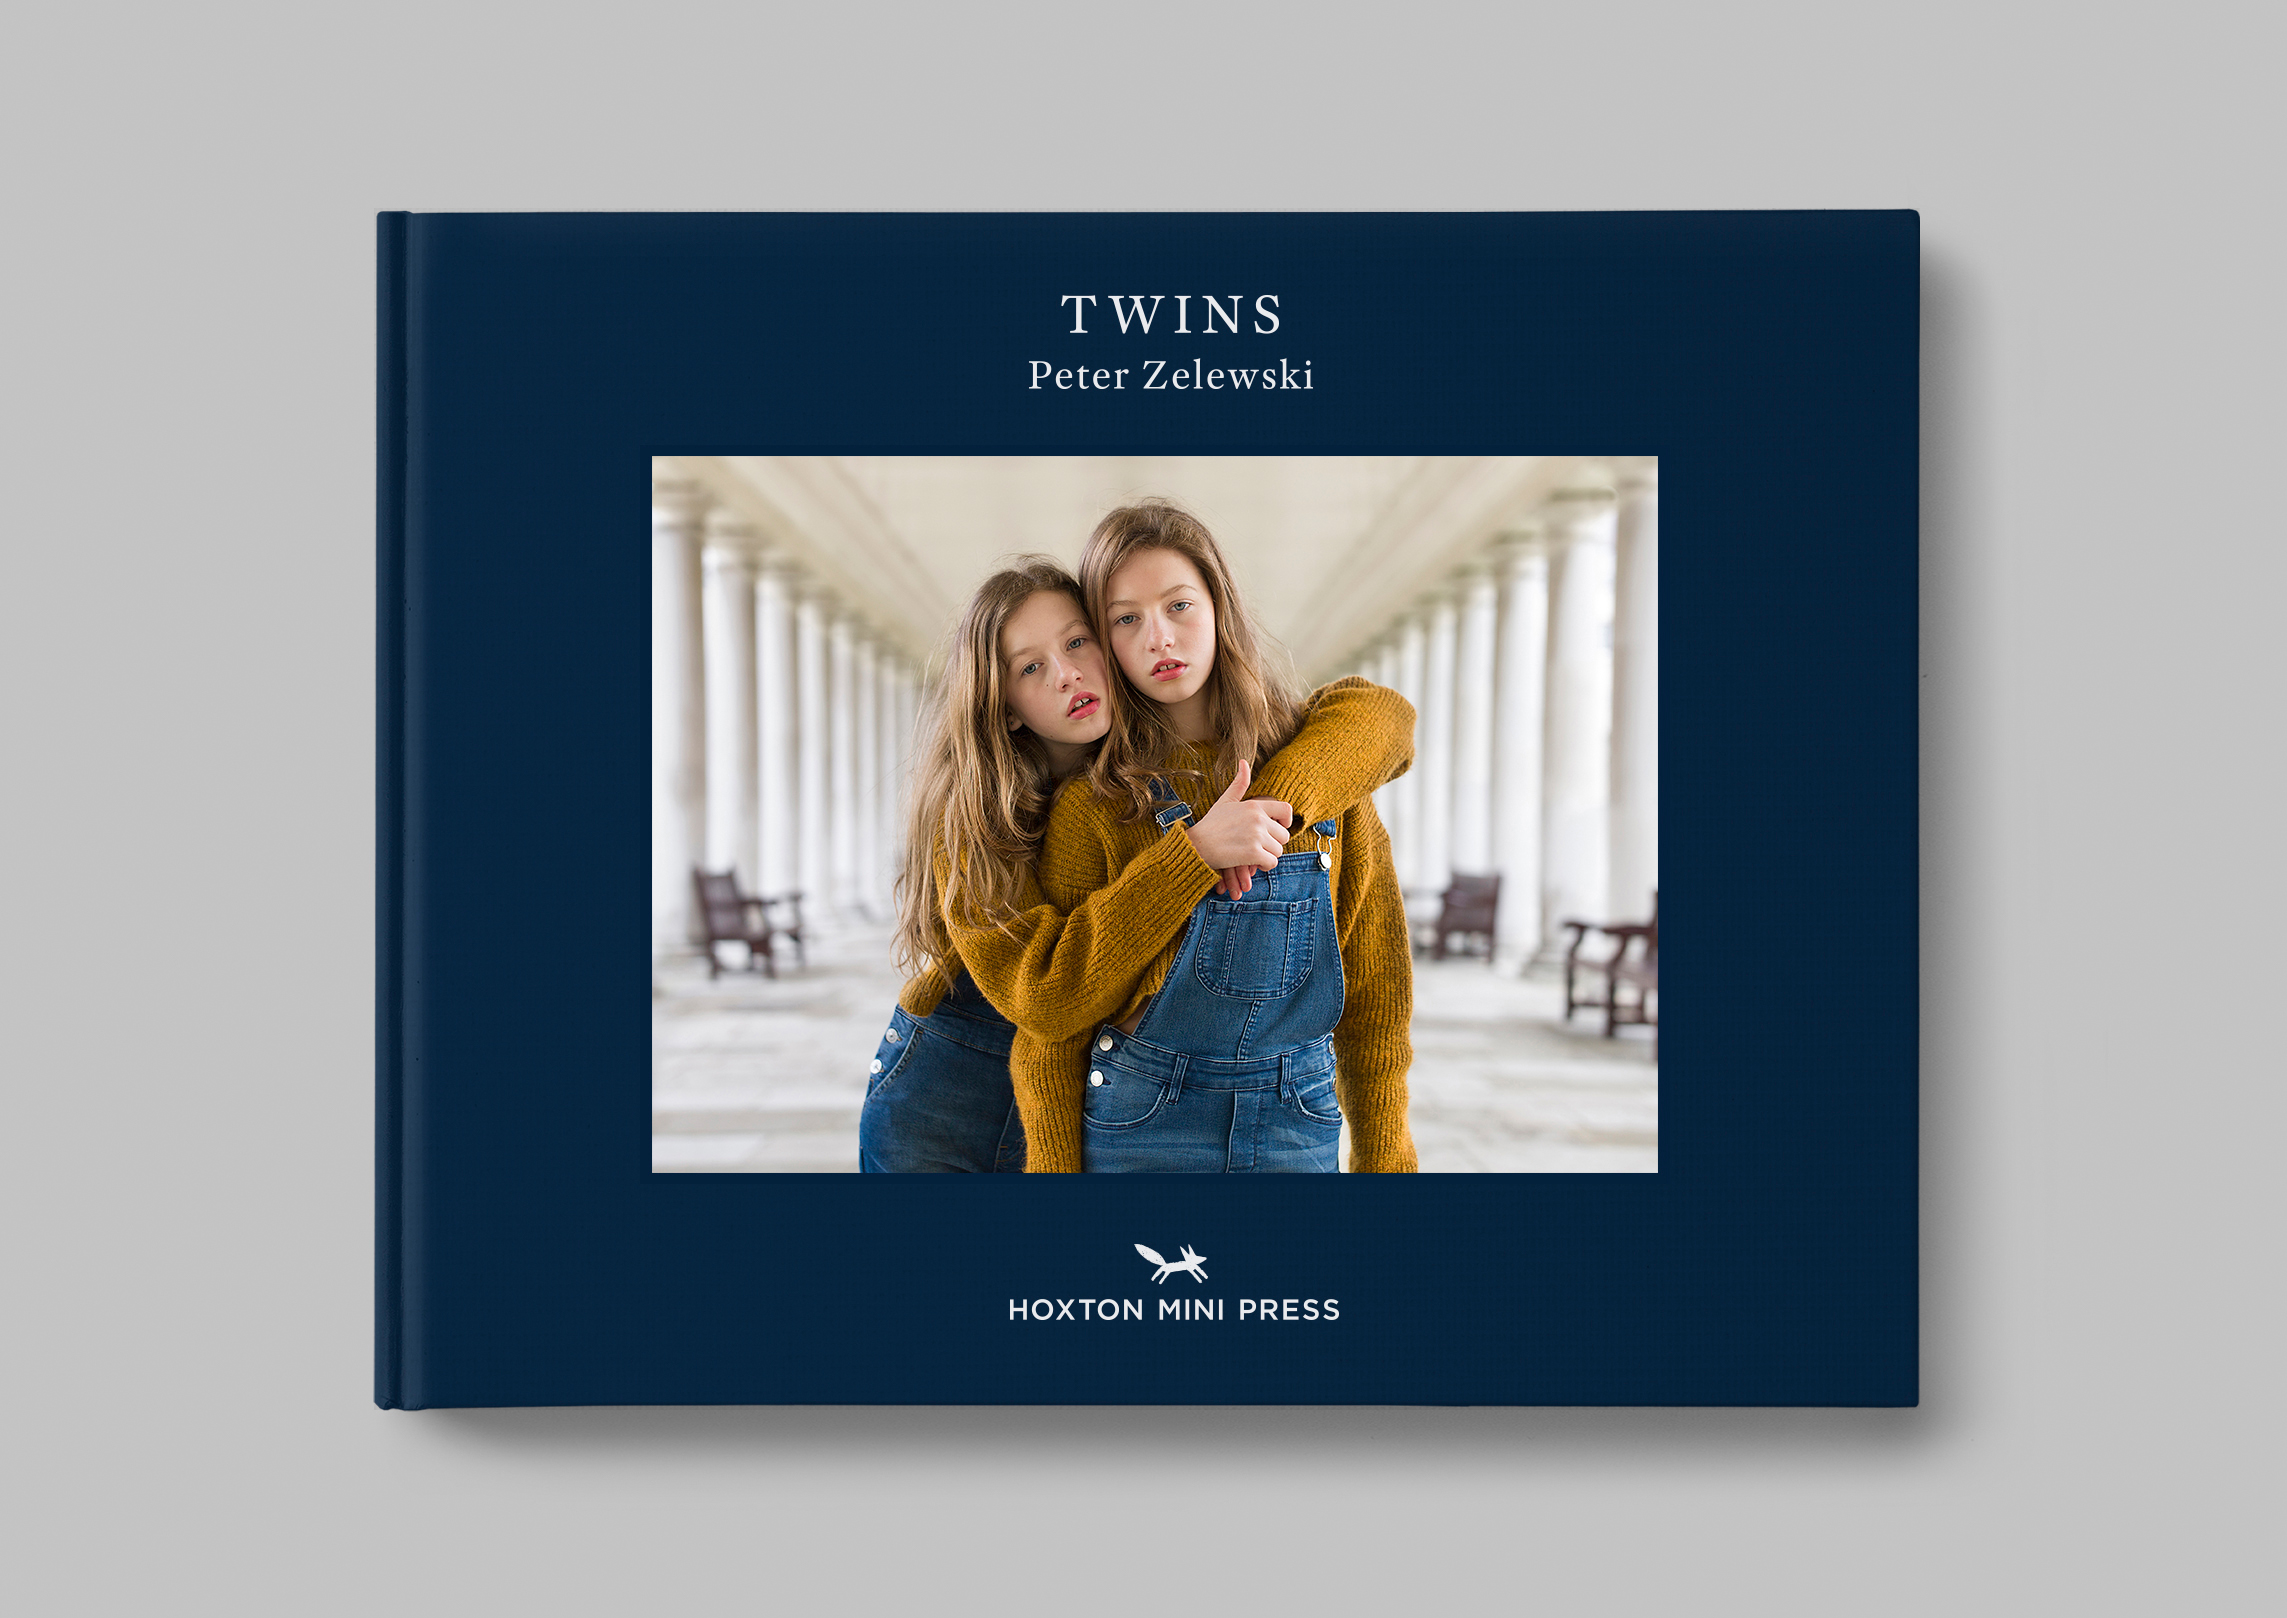 Twins - front cover 2.jpg